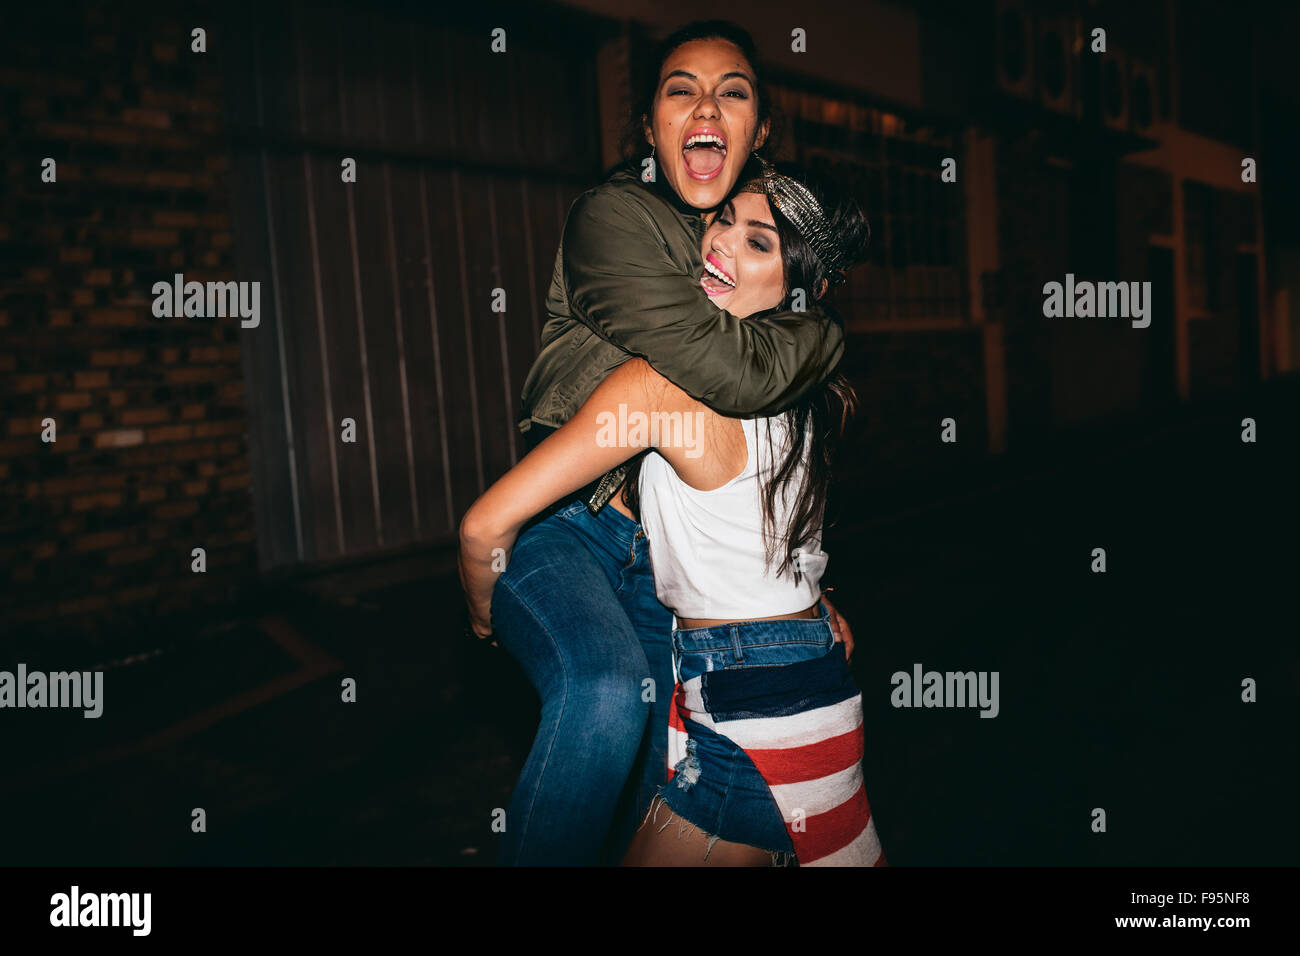 Night shot young woman lifting her best friend laughing. Female friends hanging out and having fun. - Stock Image